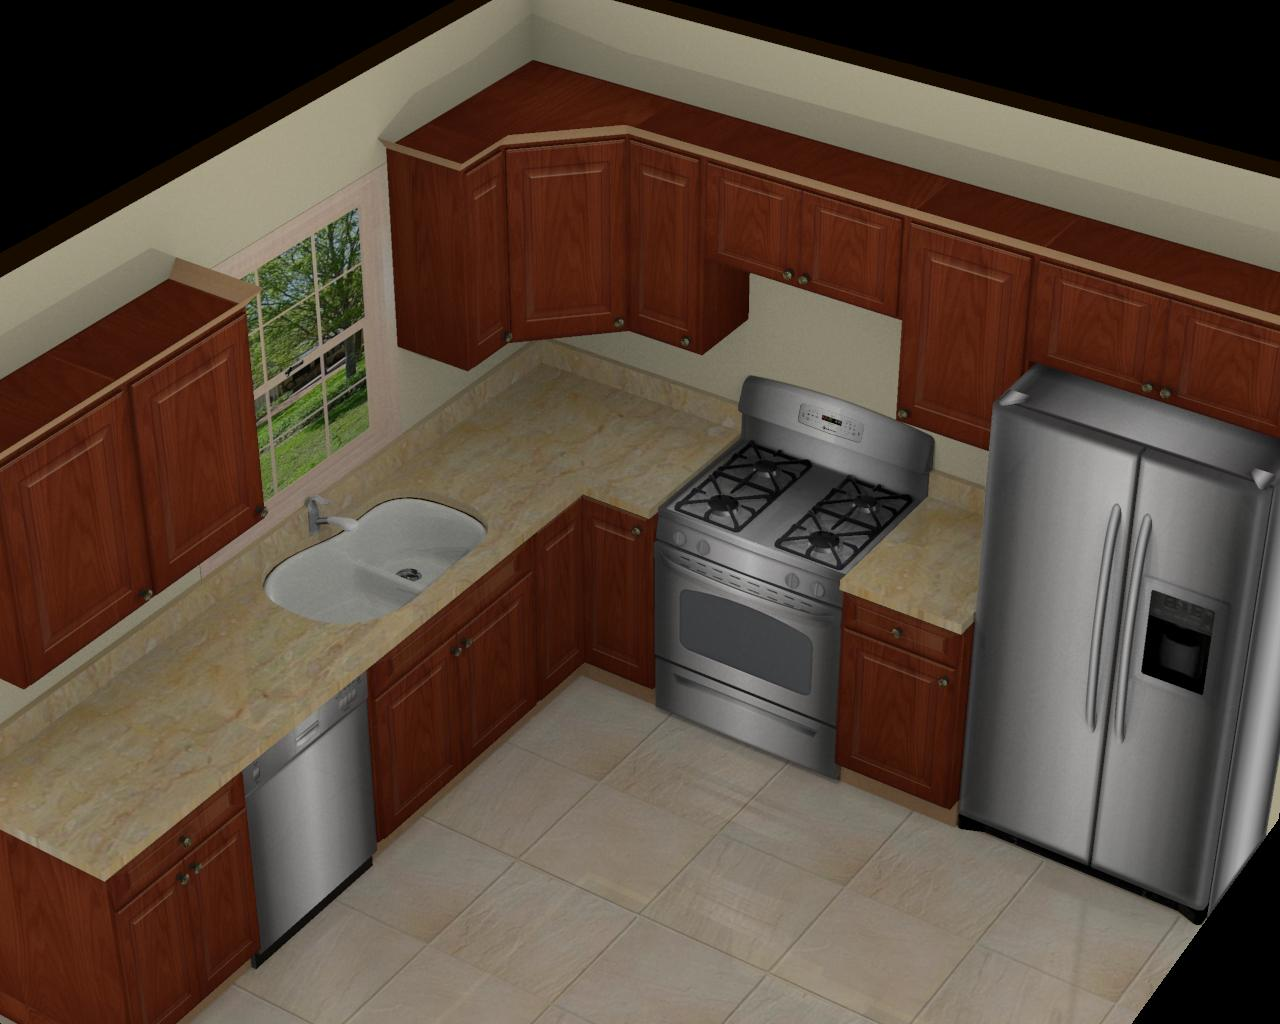 foundation dezin decor 3d kitchen model design